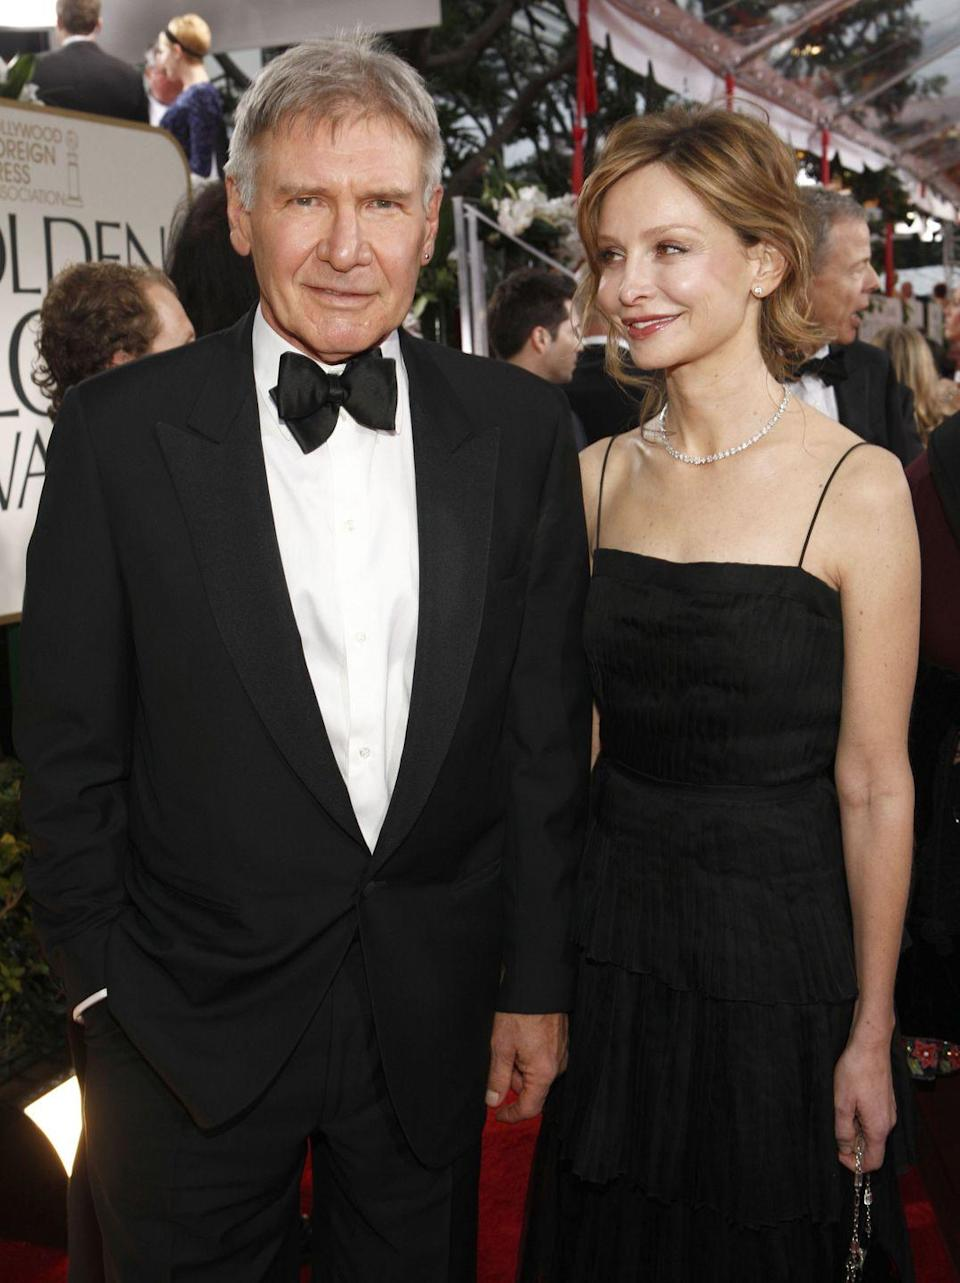 """<p>Leave it to Harrison Ford to surprise even his guests at his wedding ceremony. In 2010, the <em>Indiana Jones</em> star and his longtime girlfriend, Calista Flockhart, pulled off an elaborate elopement that gathered their nearest and dearest without them even knowing it was a wedding. The couple chose the <a href=""""https://www.popsugar.com.au/celebrity/photo-gallery/34589750/image/34589746/Calista-Flockhart-Harrison-Ford"""" rel=""""nofollow noopener"""" target=""""_blank"""" data-ylk=""""slk:New Mexico governor's mansion"""" class=""""link rapid-noclick-resp"""">New Mexico governor's mansion</a> for their venue. </p>"""